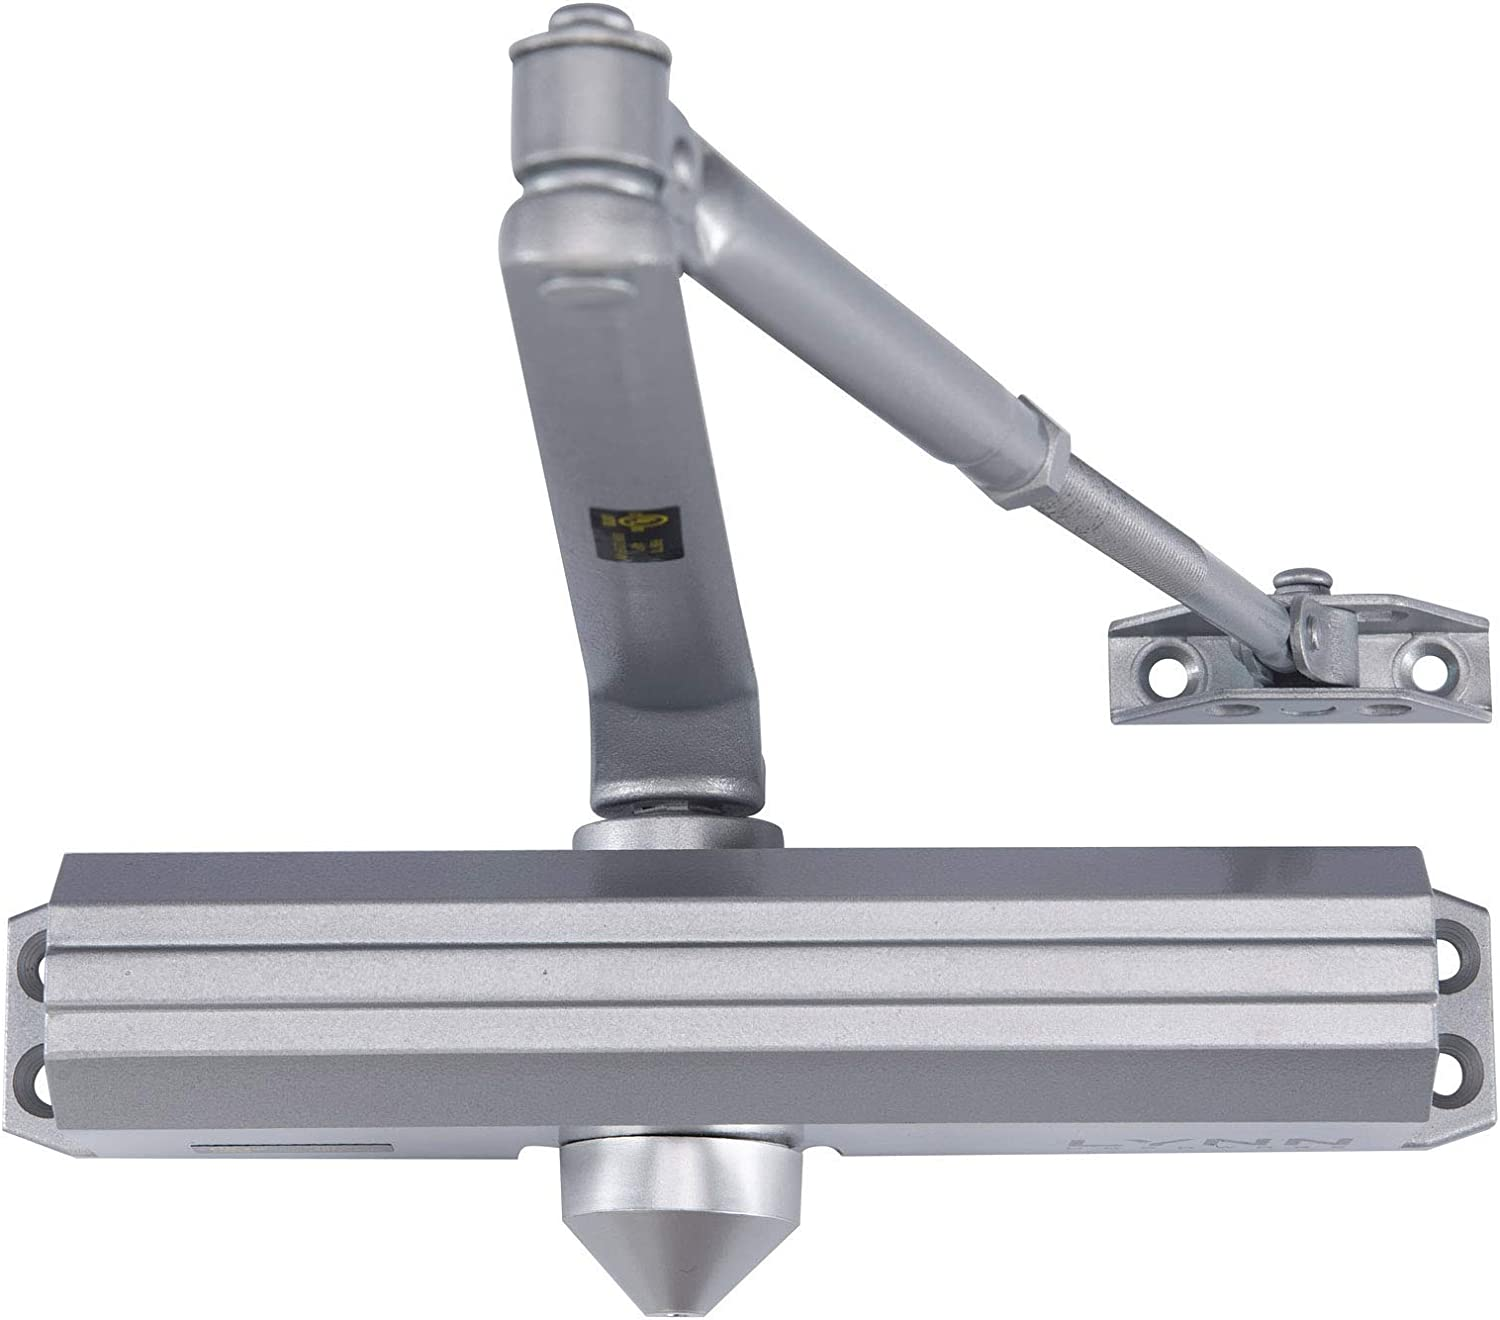 Medium/Heavy Duty Designer Commercial Door Closer - LYNN Hardware DC7016 (US26D Aluminum) Surface Mounted, Grade 1- ADA & UL 3 Hour Fire Rated, Adjustable Size 1-6 for entrances & Aluminum storefronts